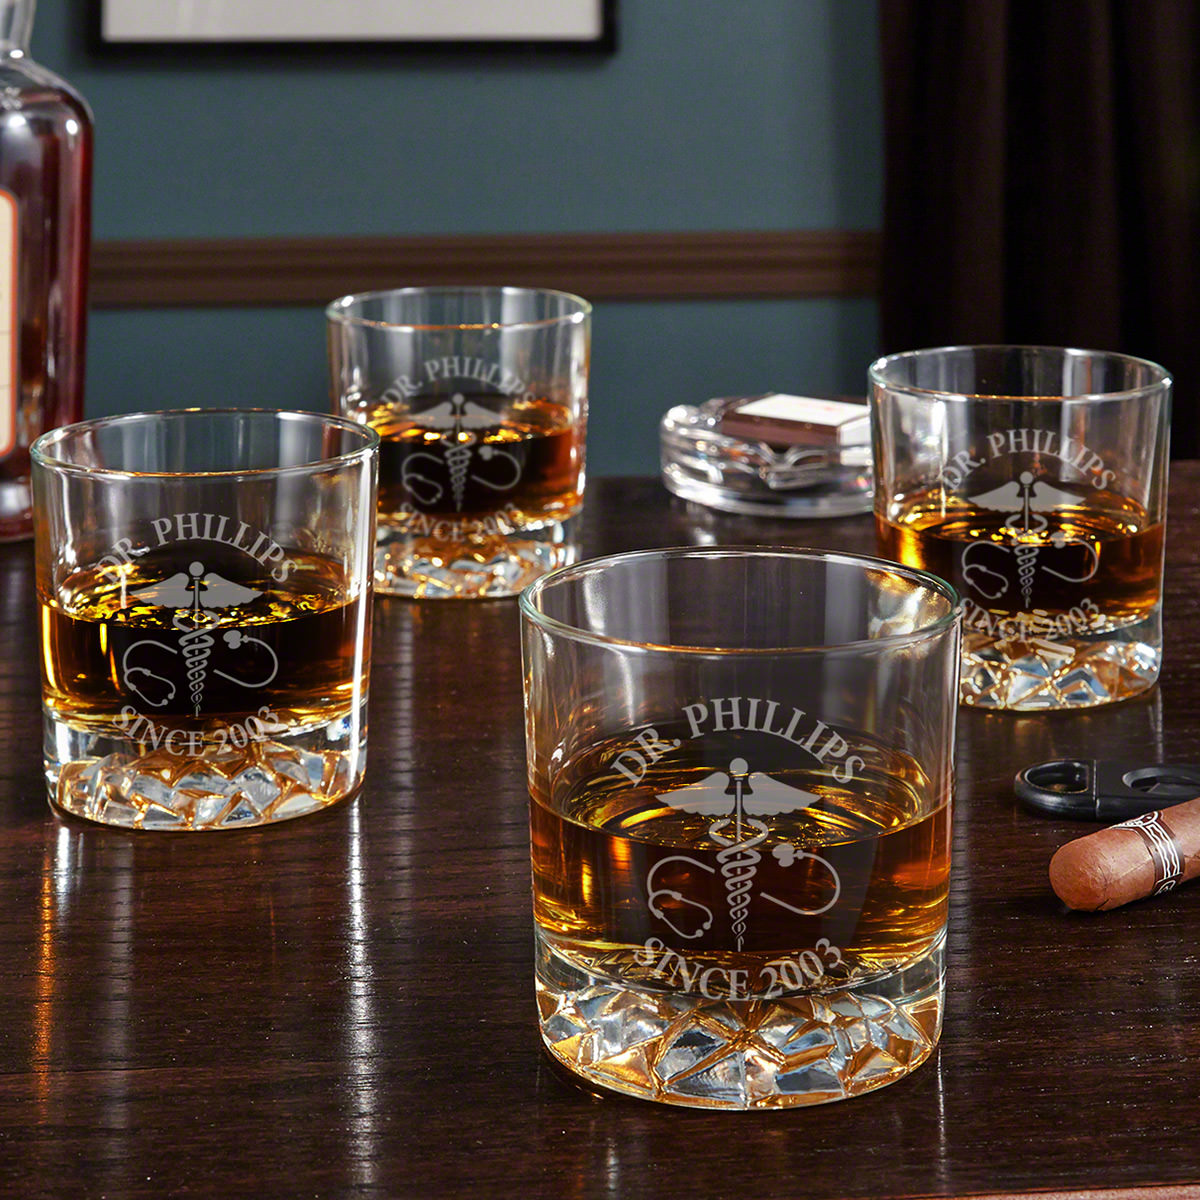 Caduceus Personalized Set of 4 Fairbanks Glasses Gifts for Med Students